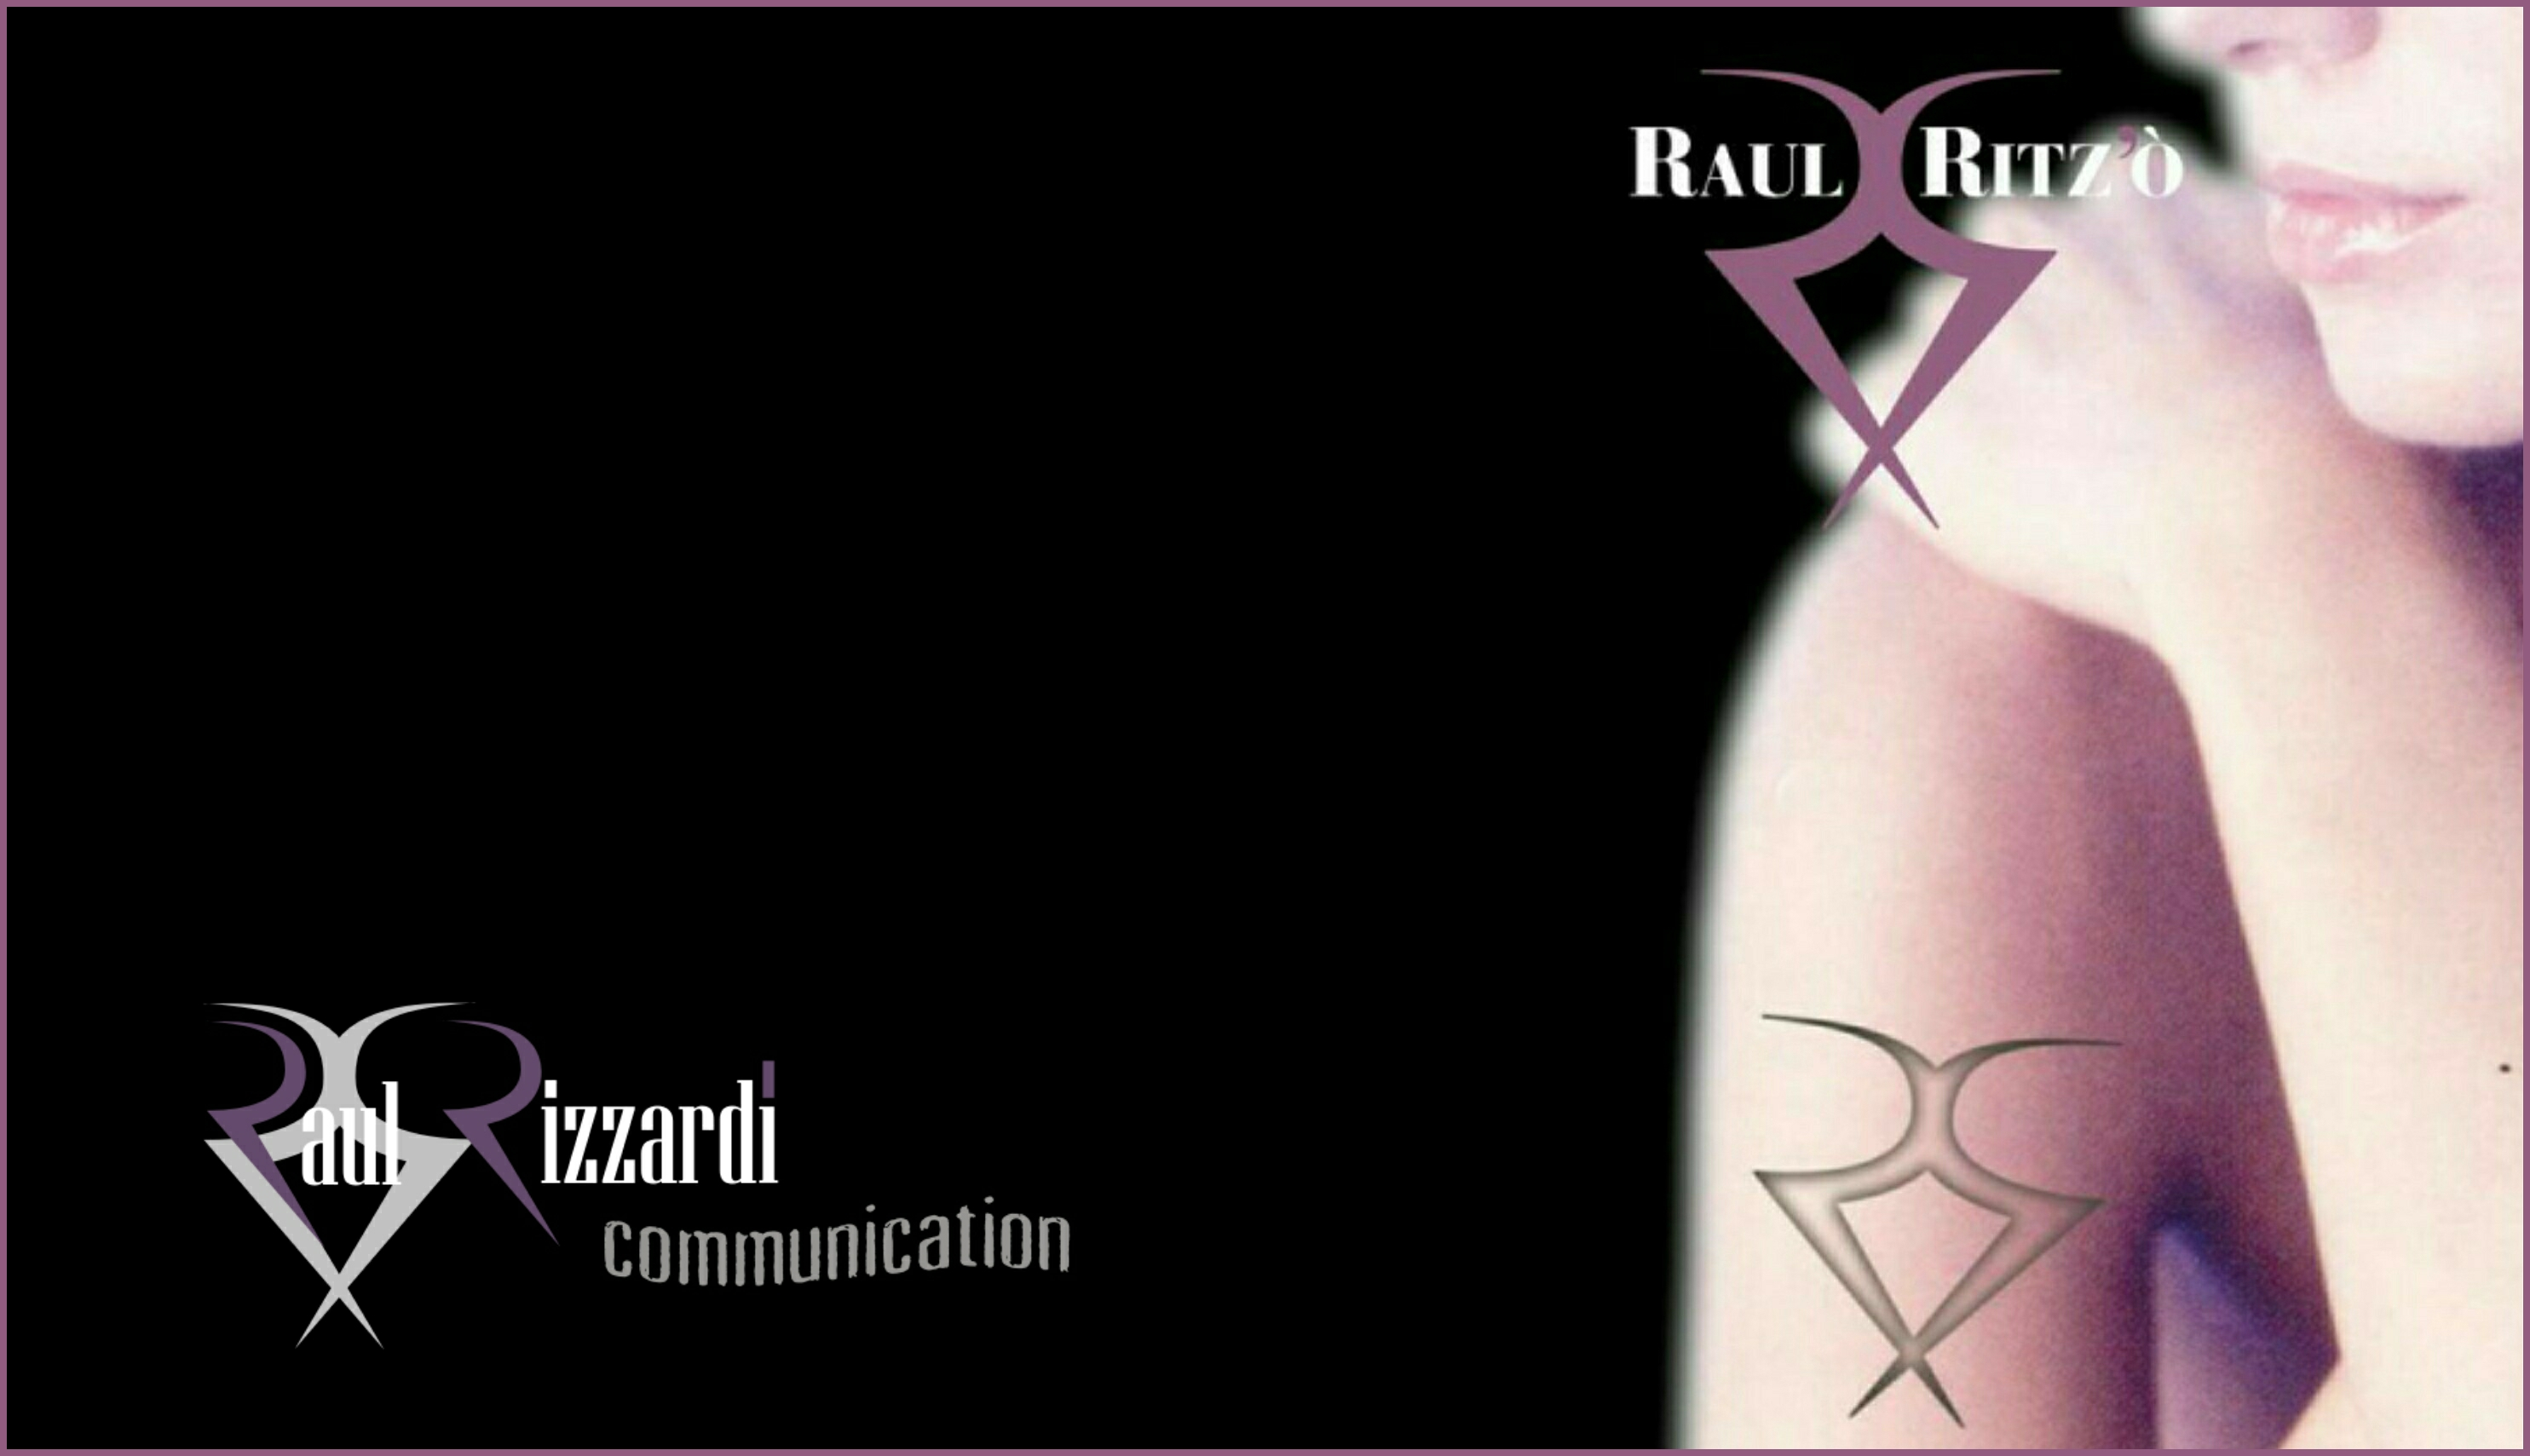 Raul Rizzardi RitZ'Ó Communications